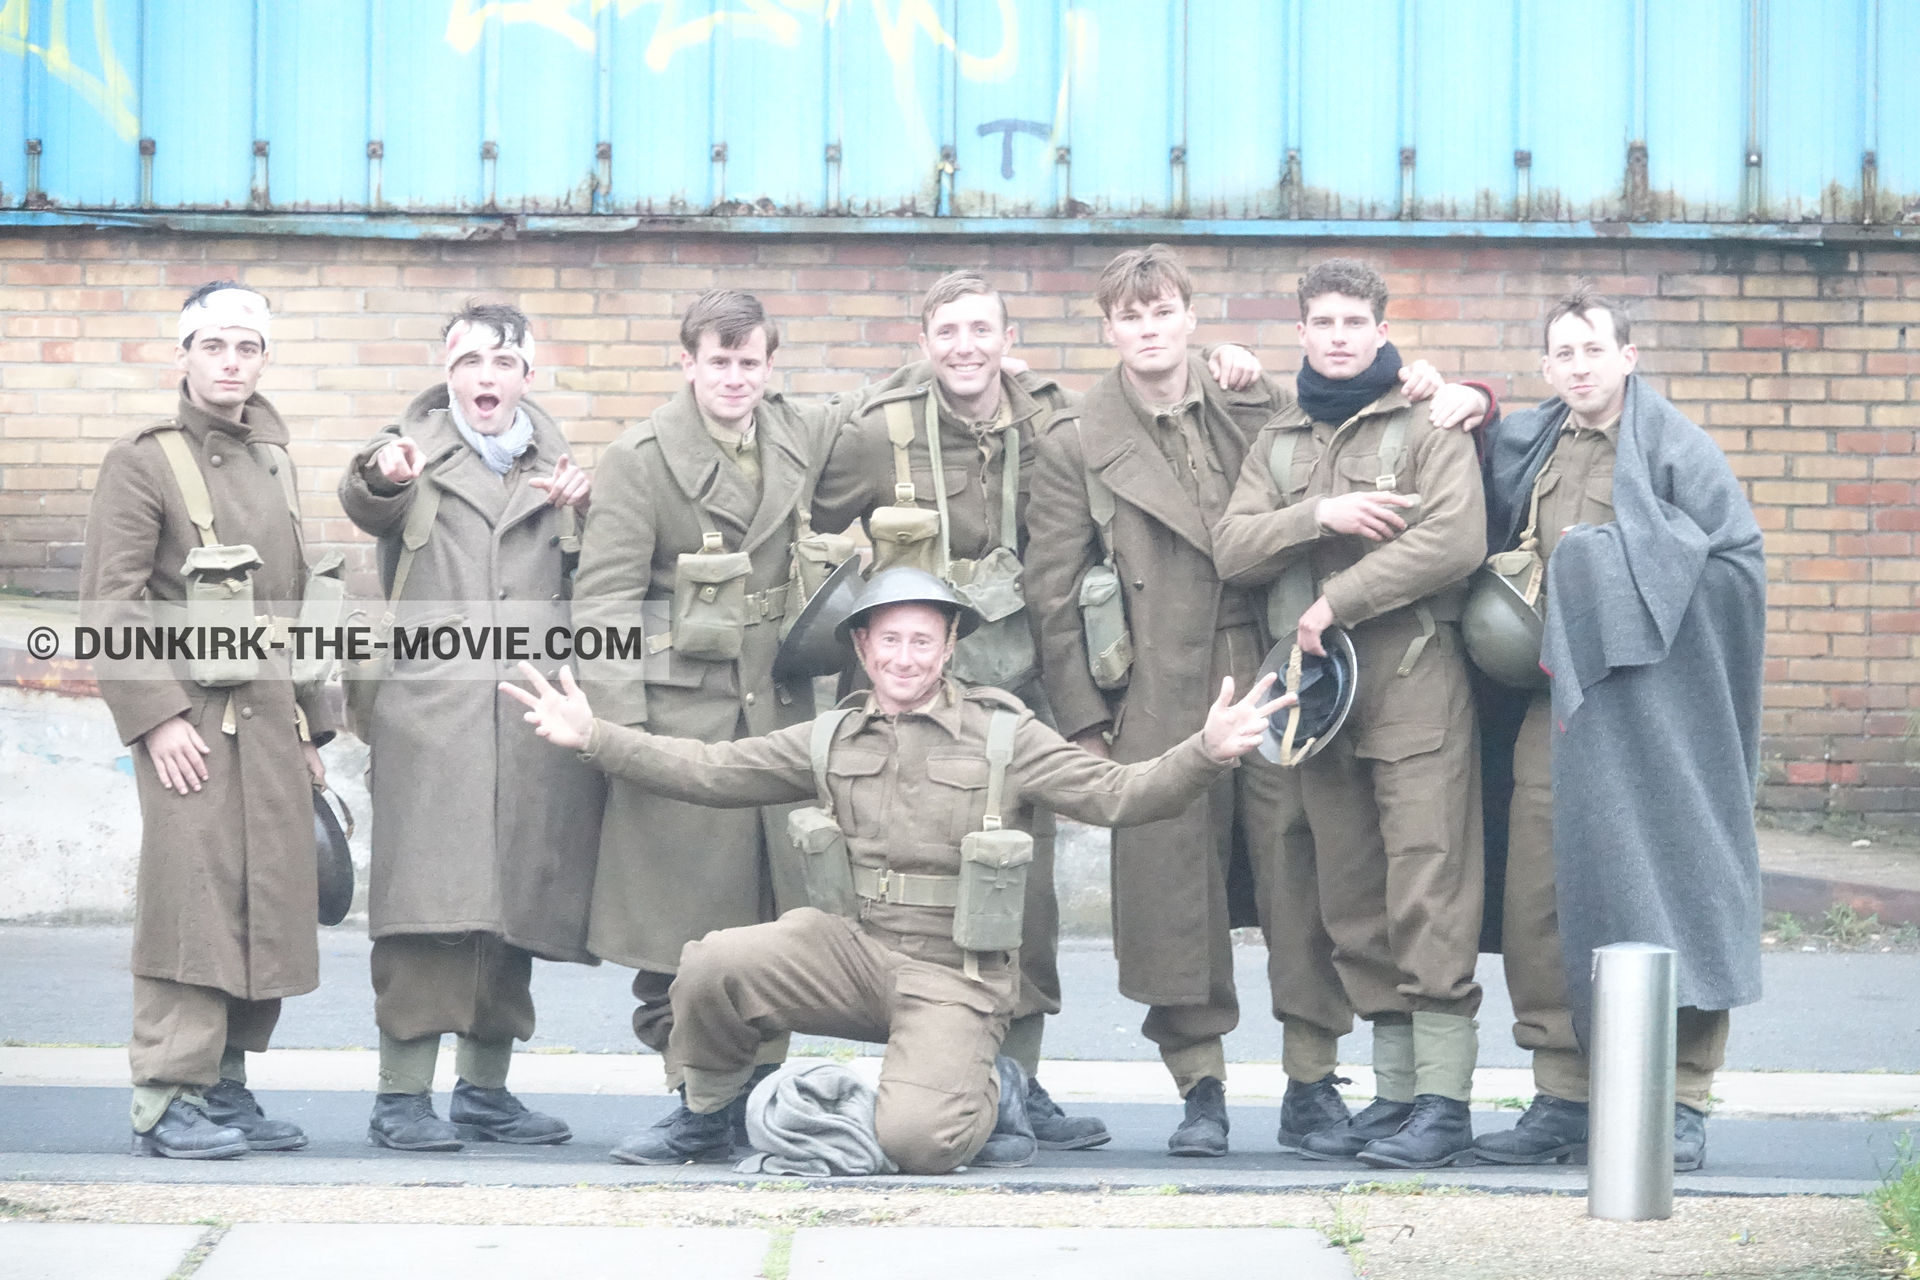 Picture with supernumeraries,  from behind the scene of the Dunkirk movie by Nolan